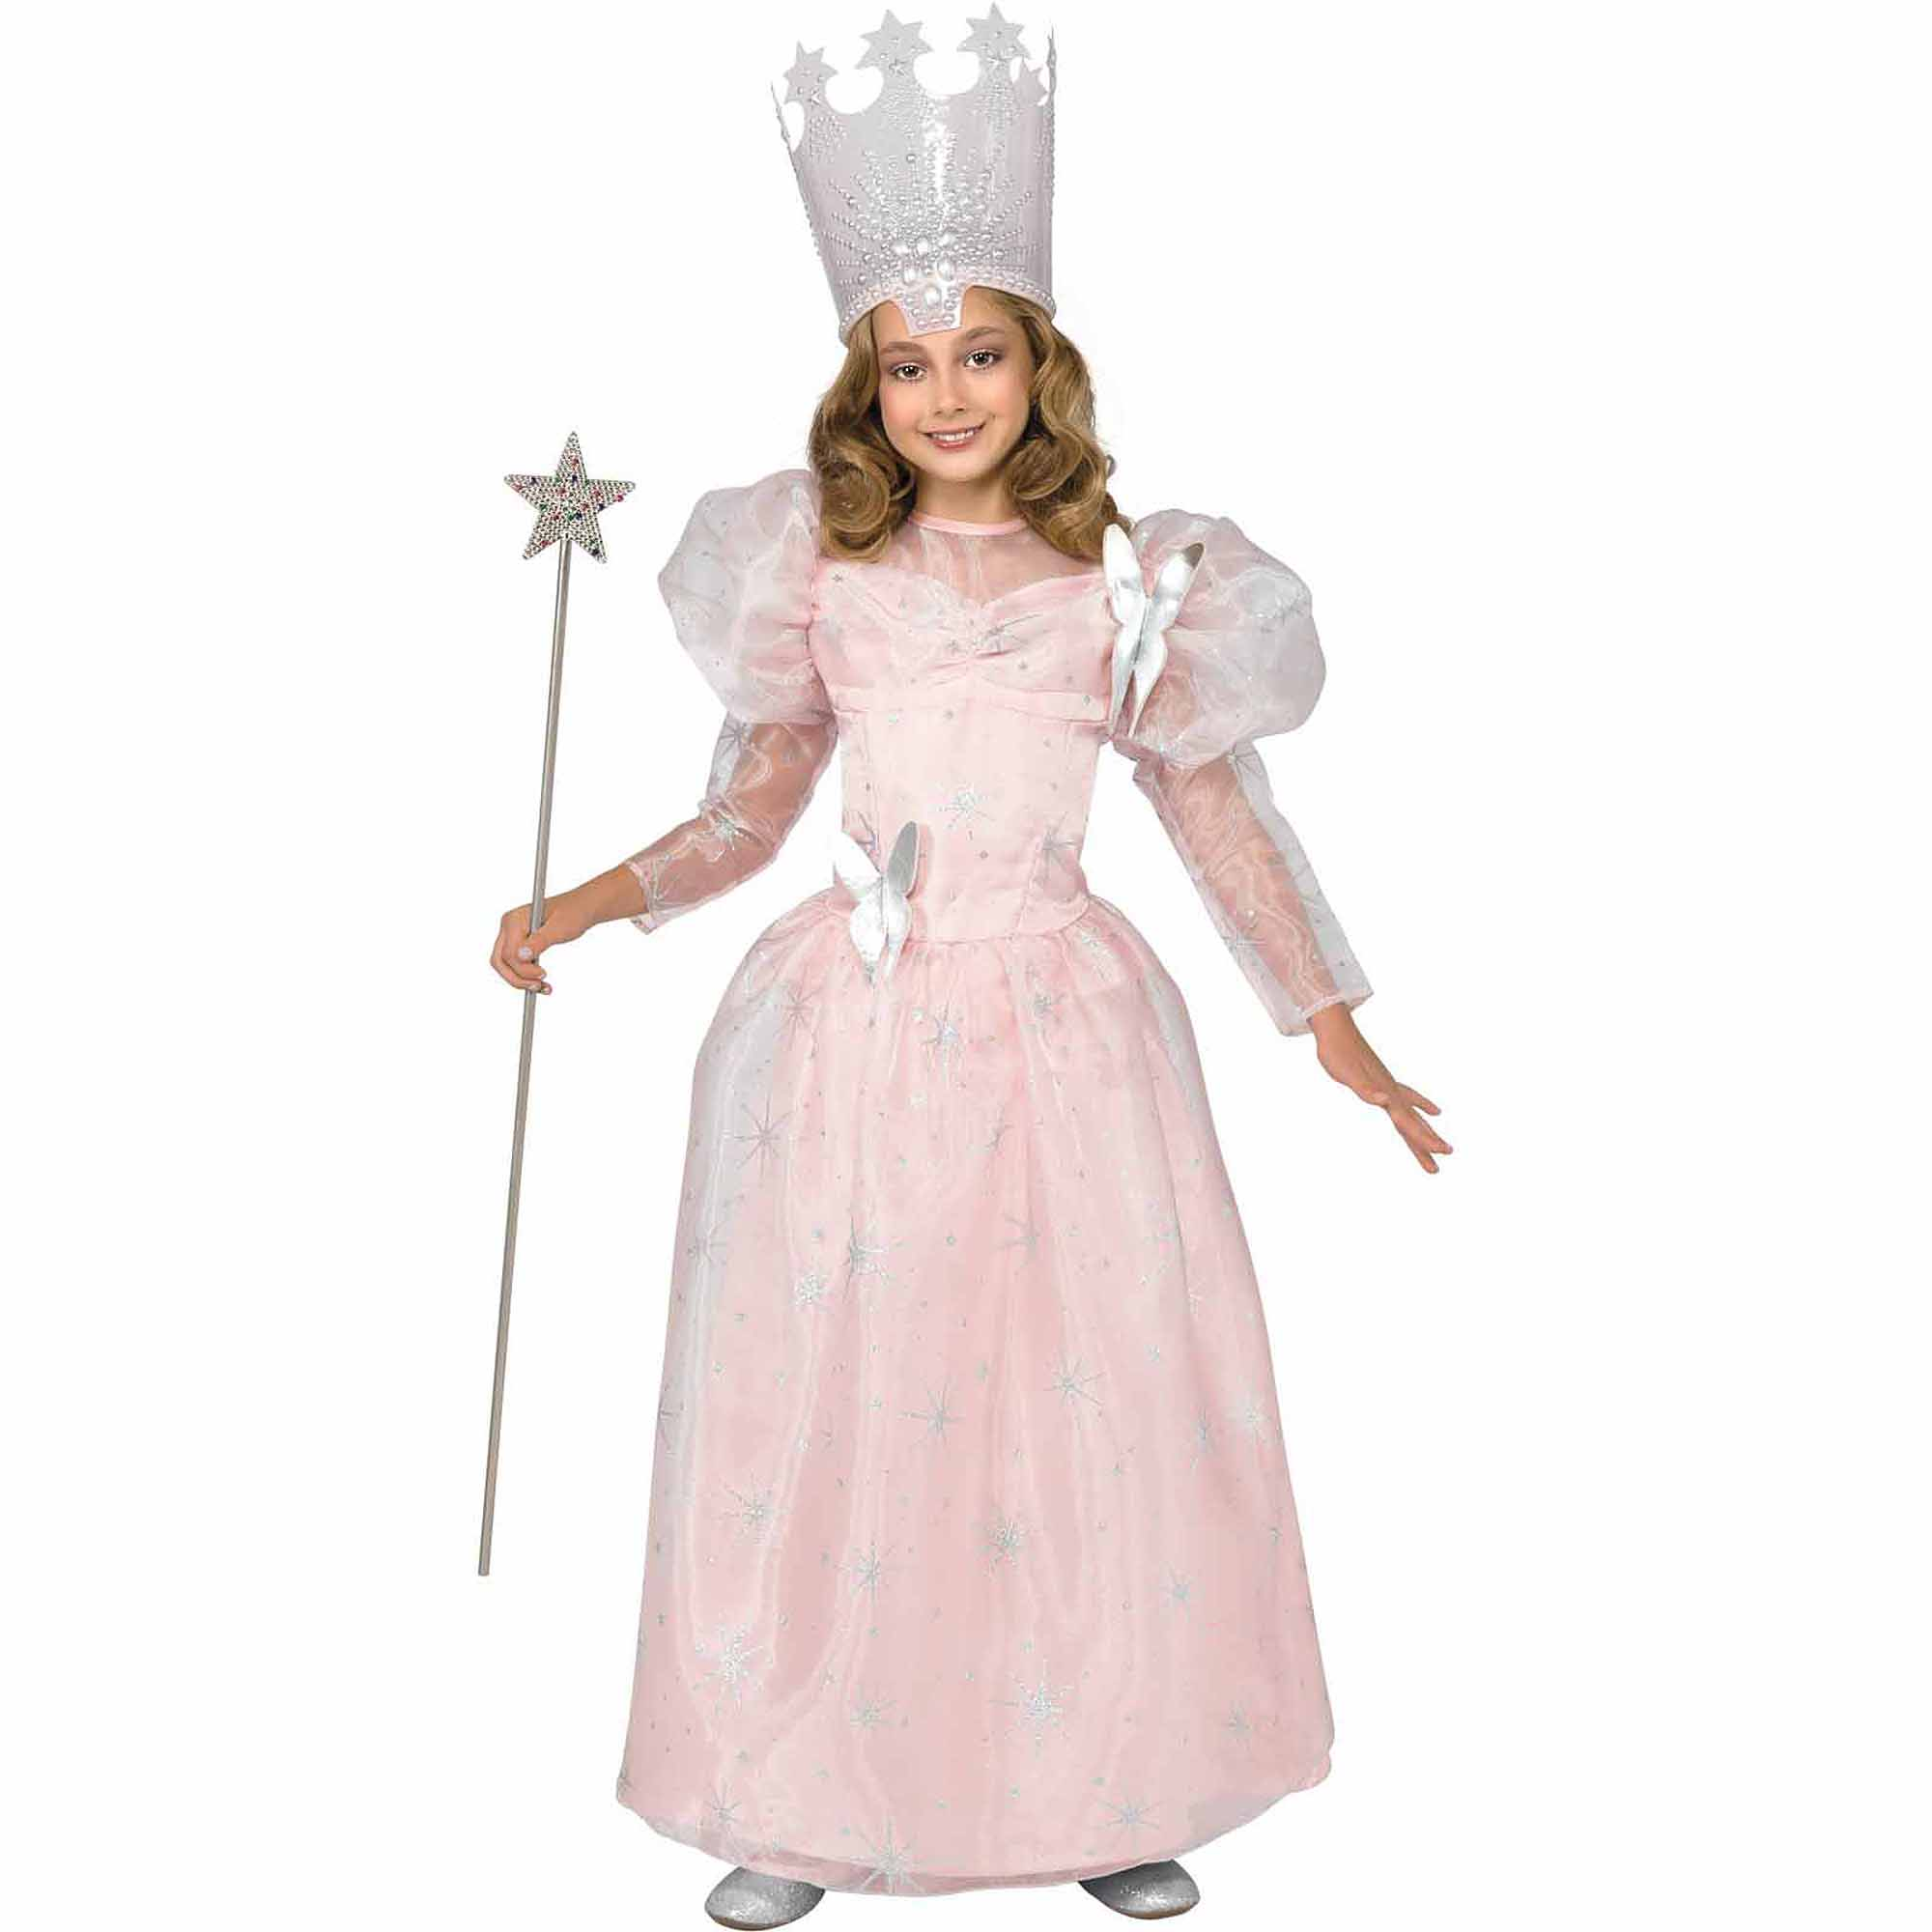 Wizard of Oz  Glinda  The Good Witch Deluxe Child Halloween Costume - Walmart.com  sc 1 st  Walmart & Wizard of Oz